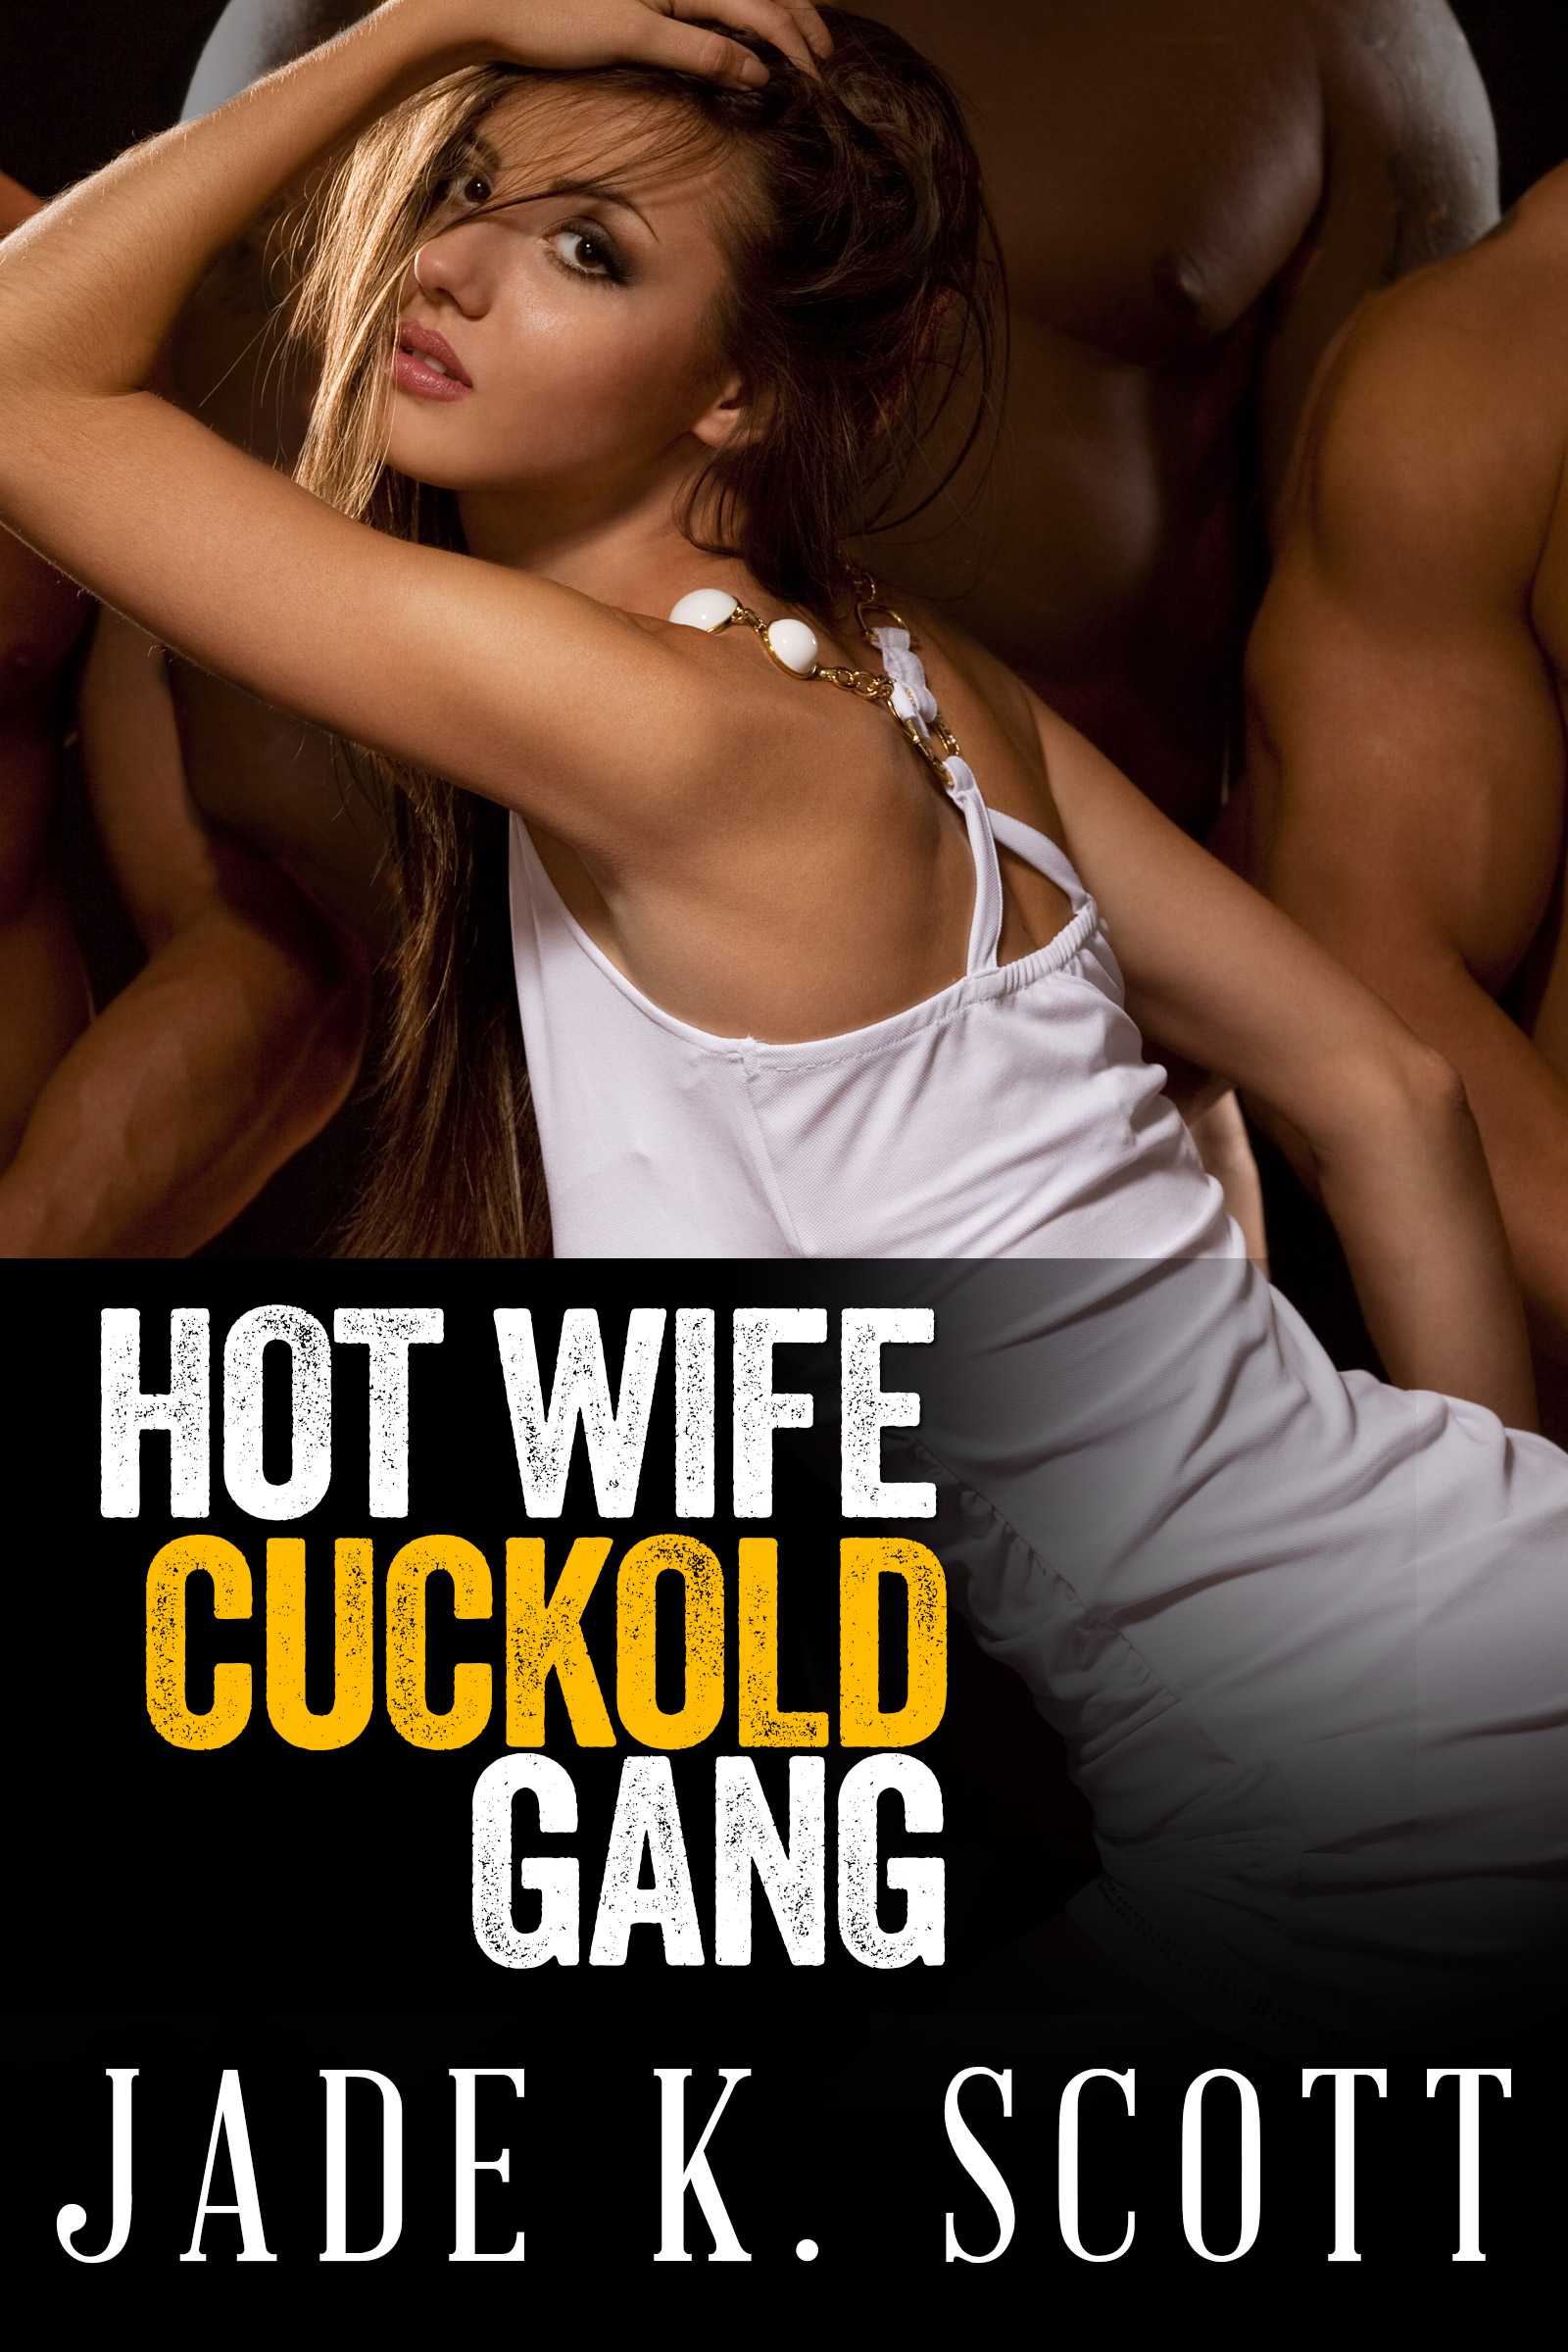 Gang bang husband story )